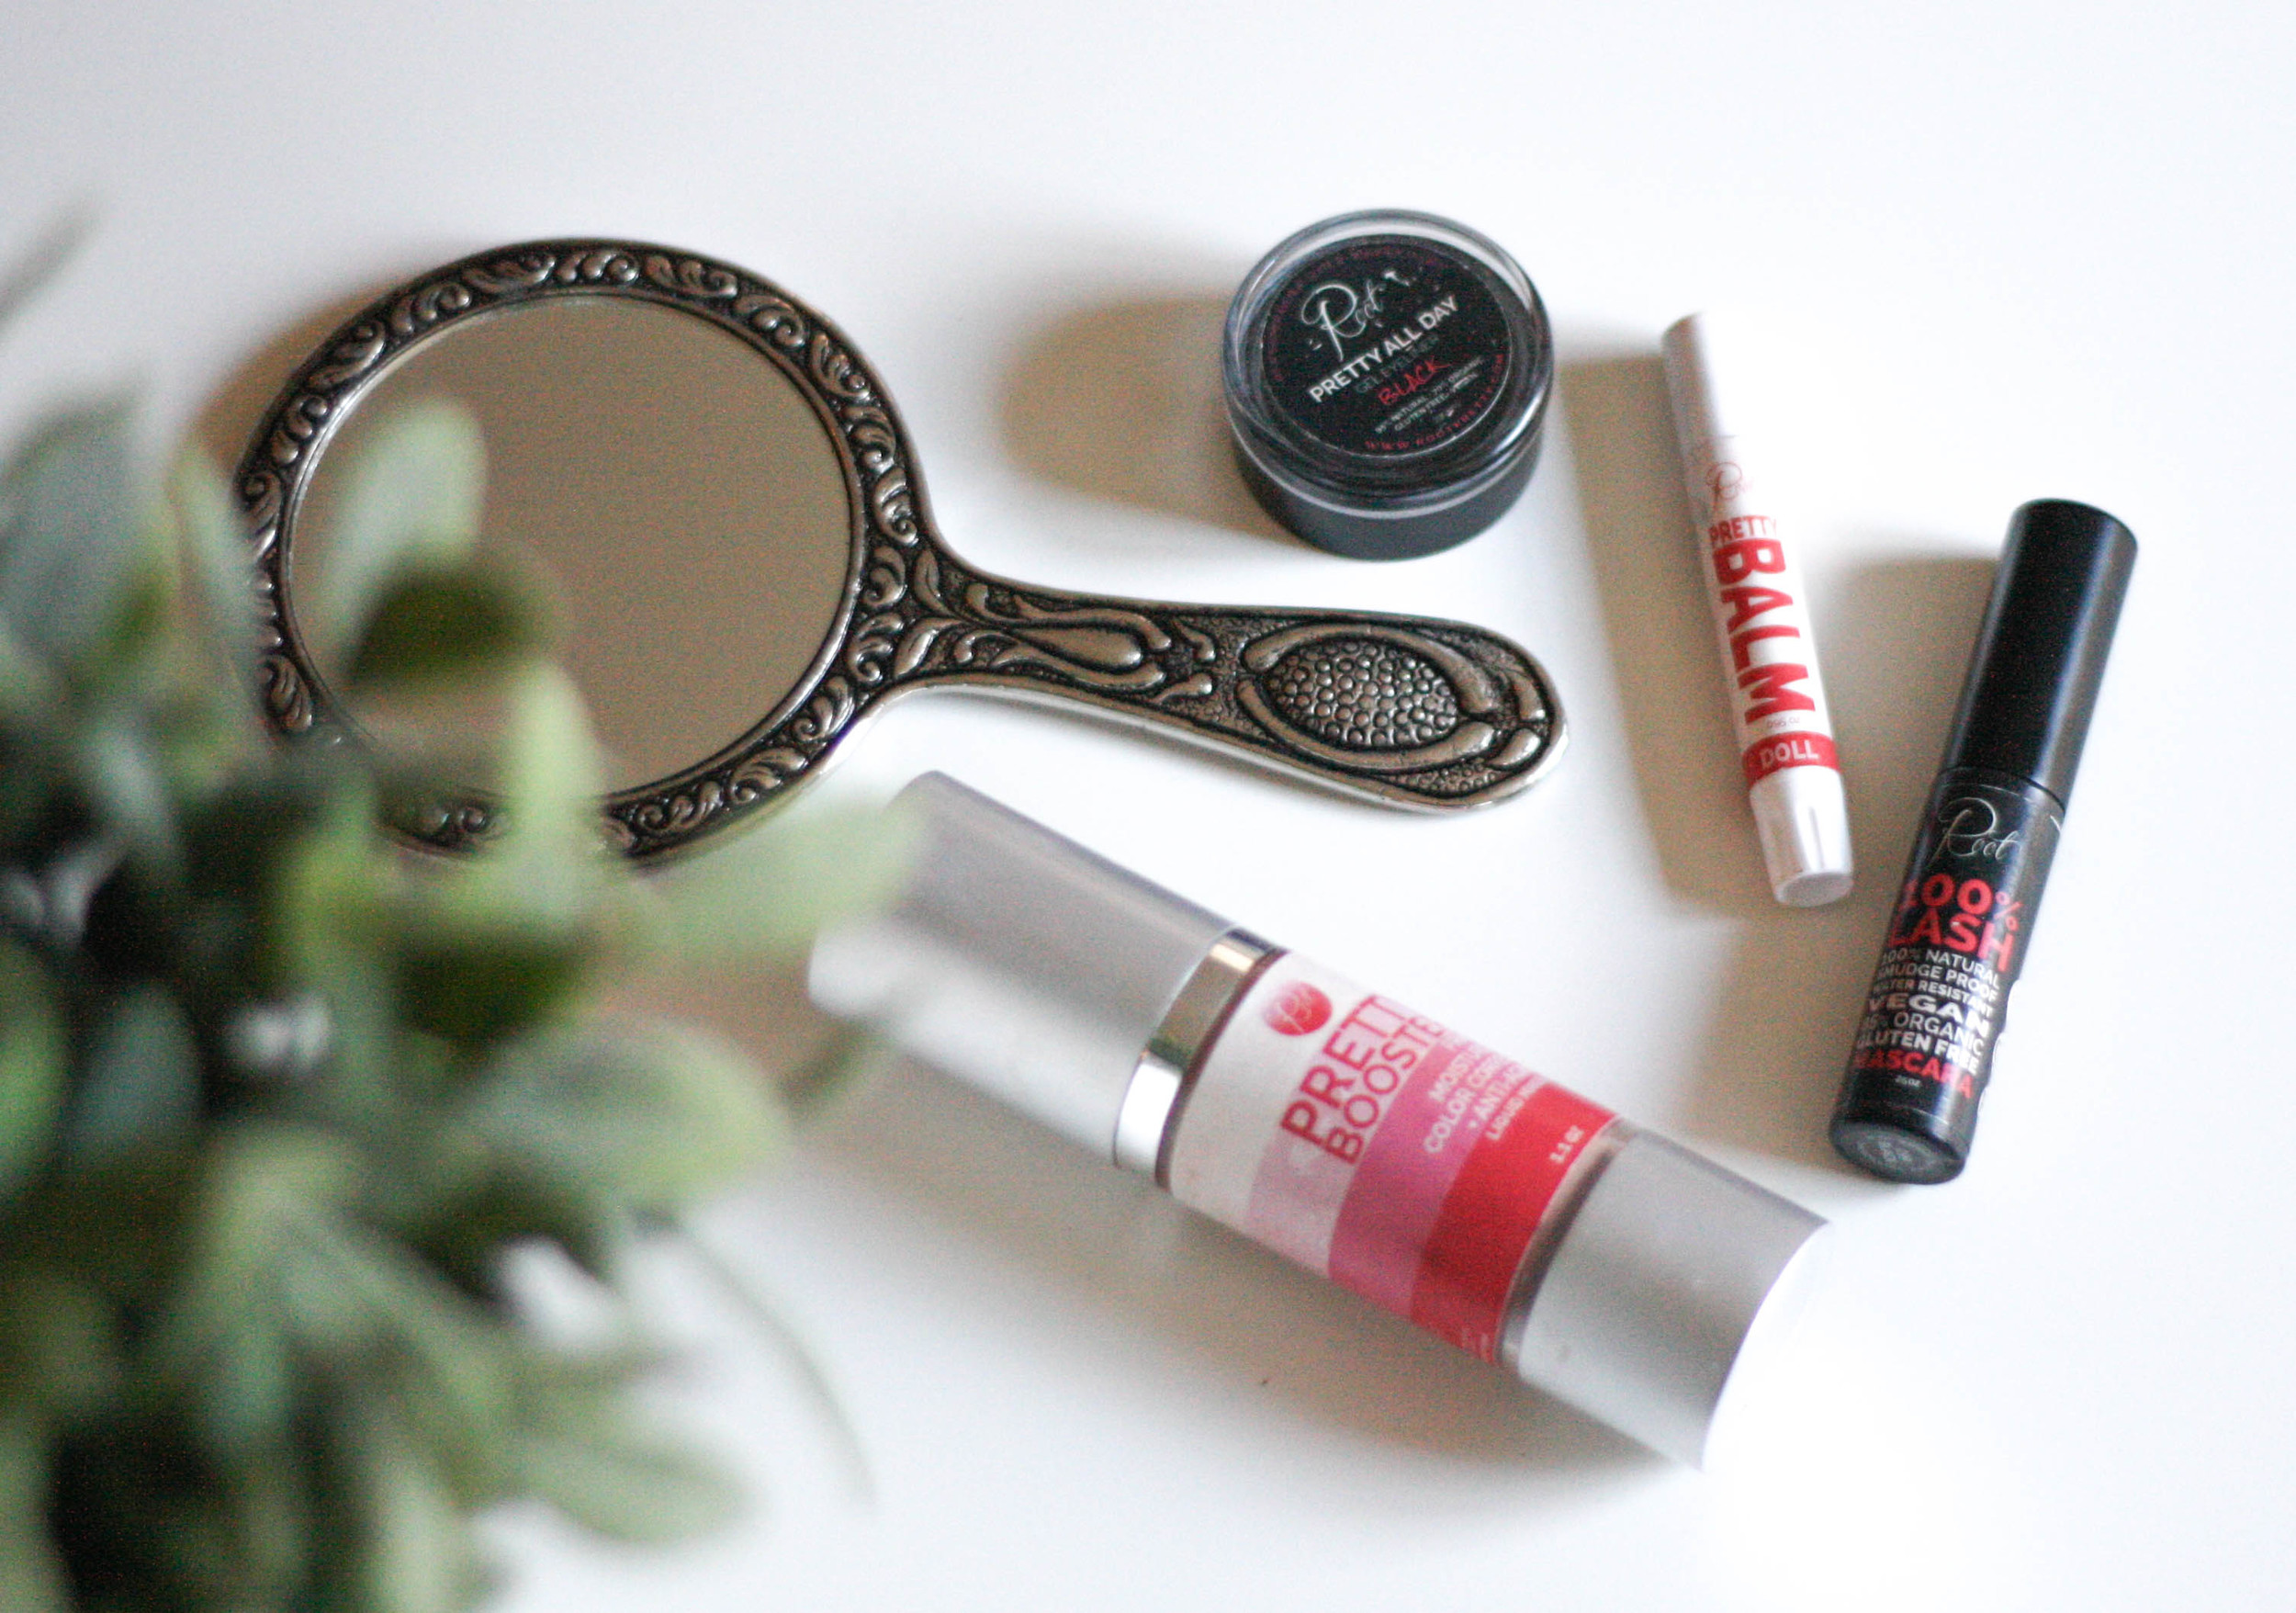 Pretty Booster, 100% Lash mascara, Doll pretty balm, + Pretty All Day gel eyeliner, above.